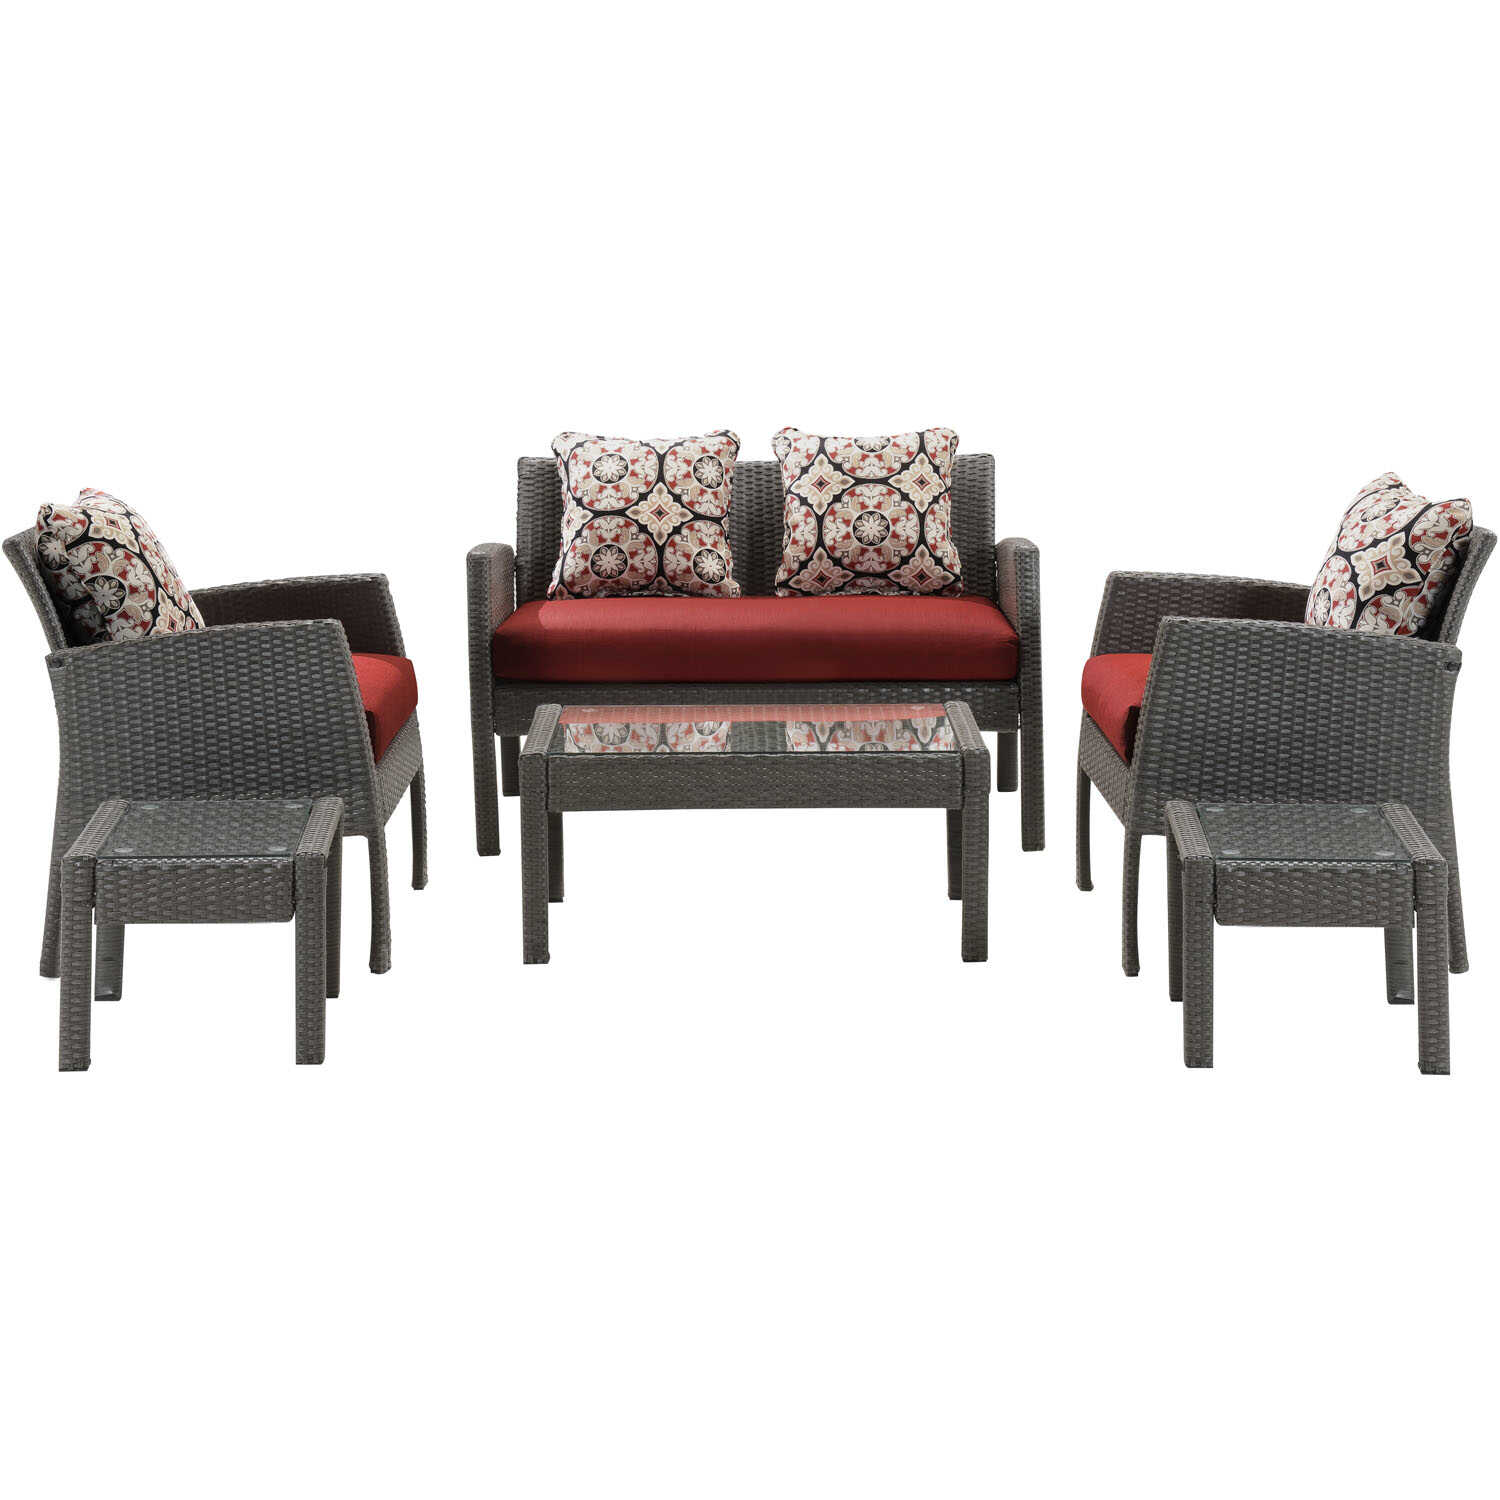 Hanover  Chelsea  6 pc. Brown  Steel  Crimson  Patio Set  Red